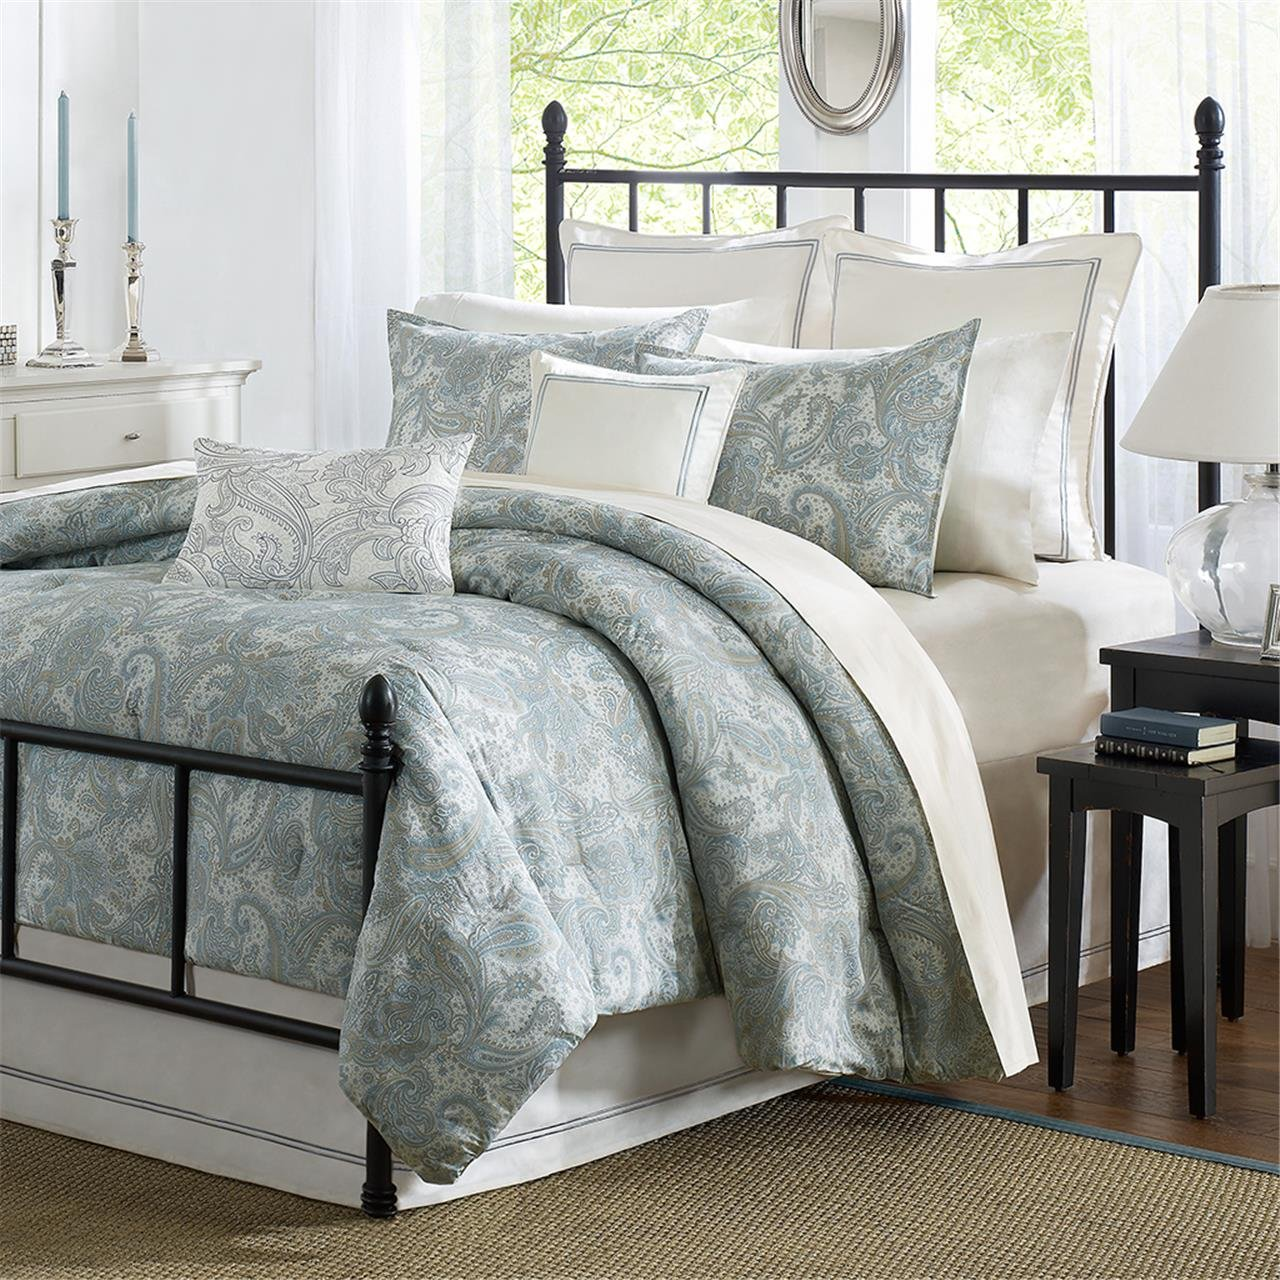 Harbor House Chelsea Paisley Comforter Set, Queen, Multi